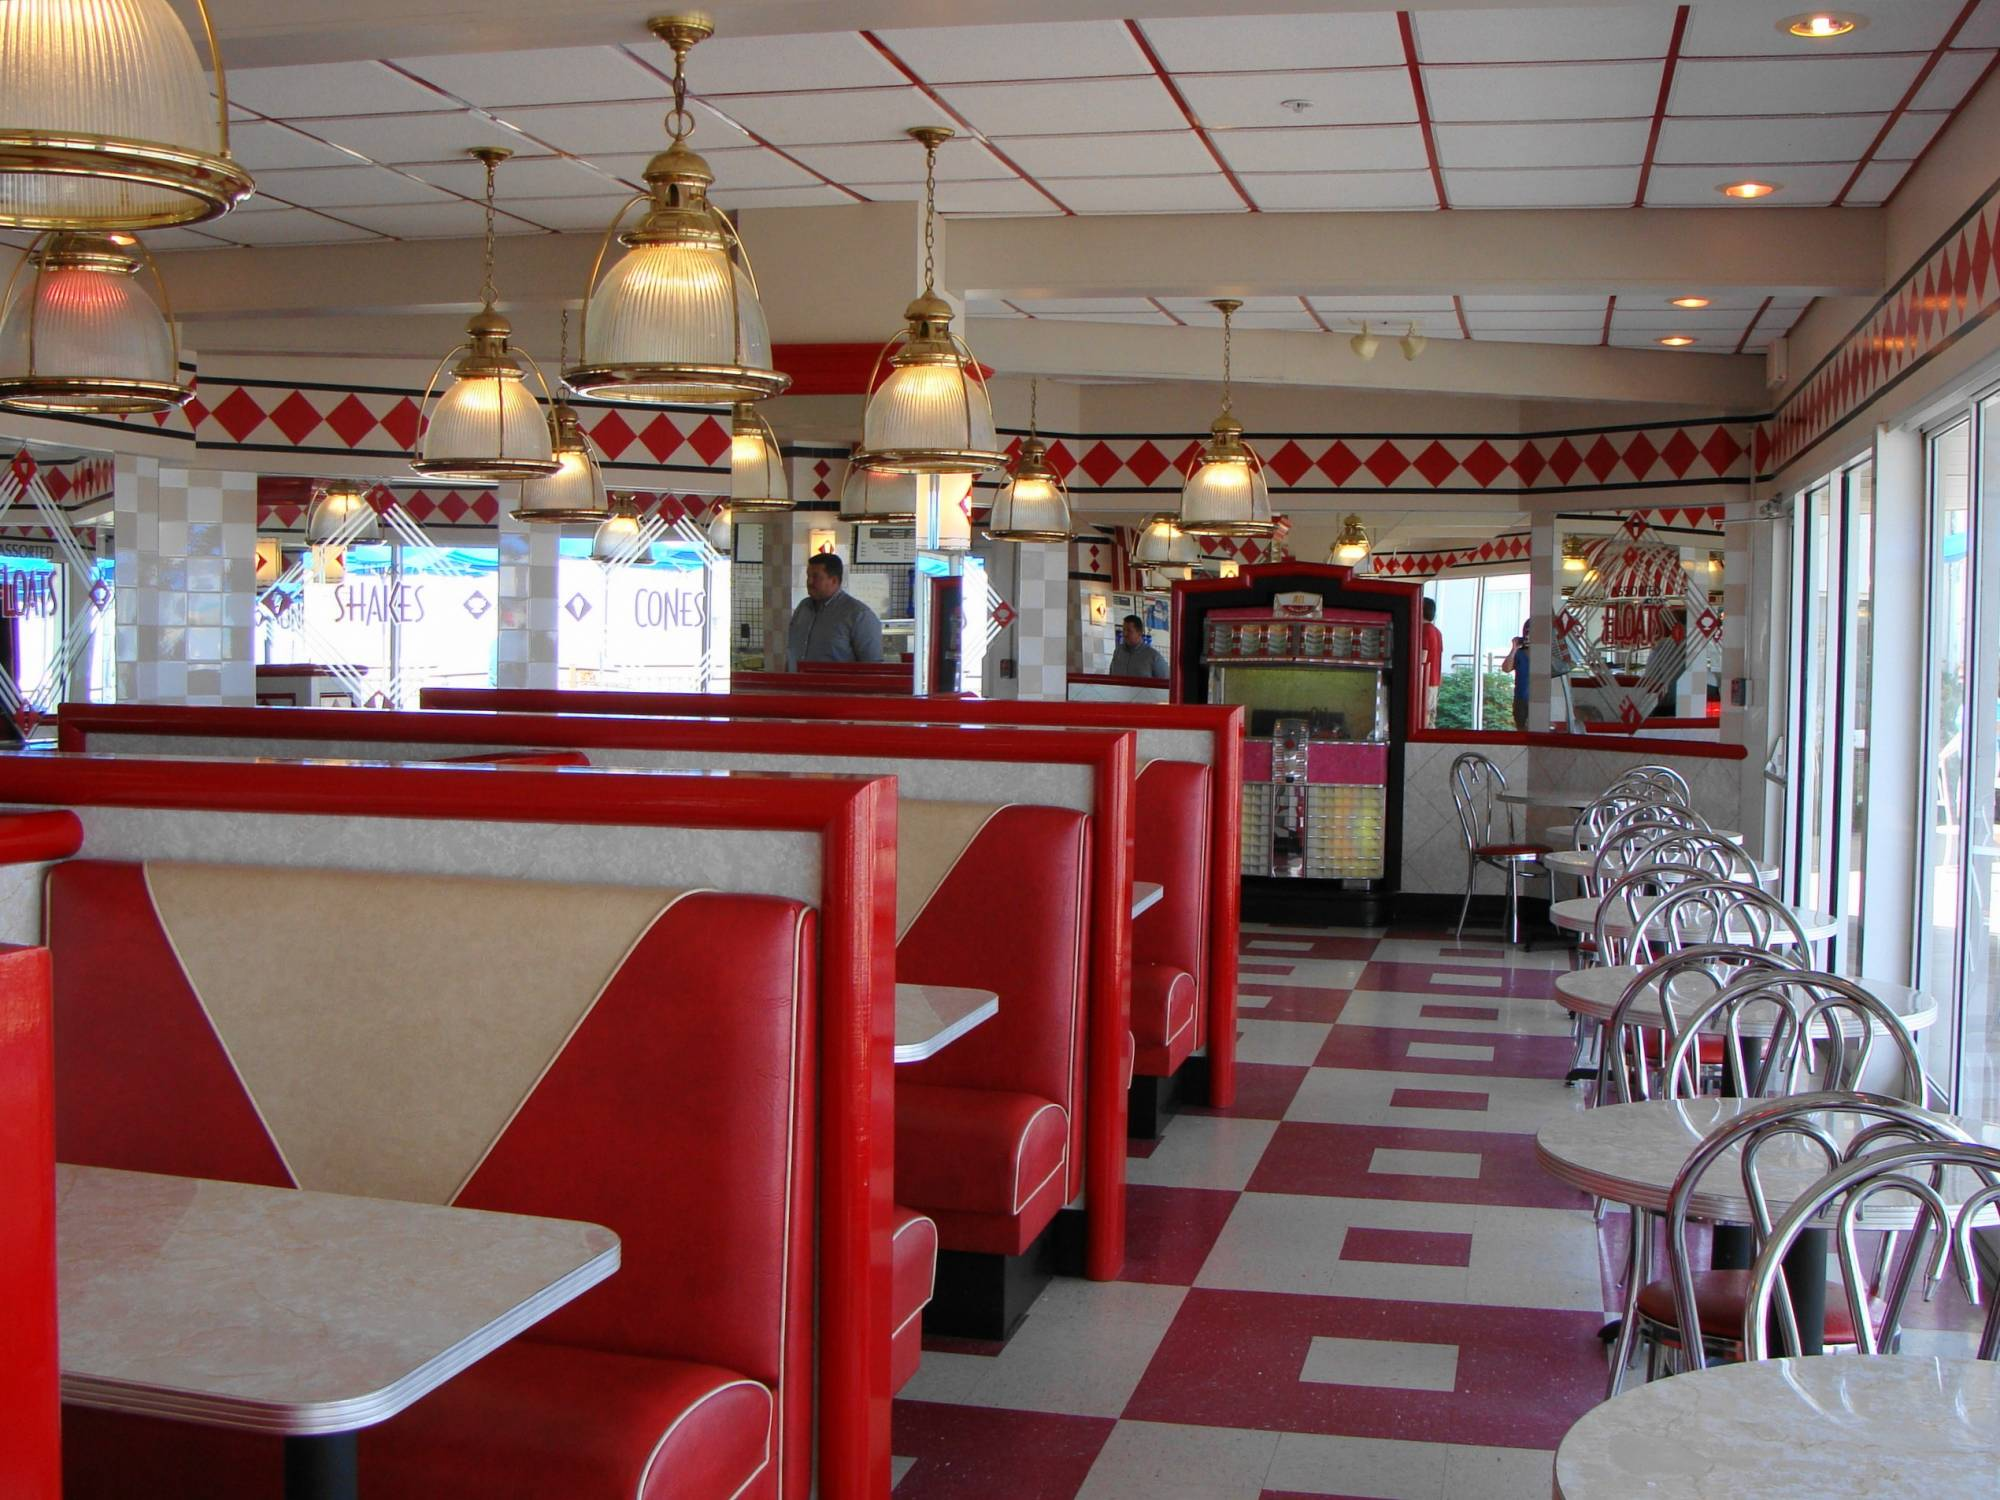 Beaches & Cream Soda Shop - Hotel Breakers - Cedar Point